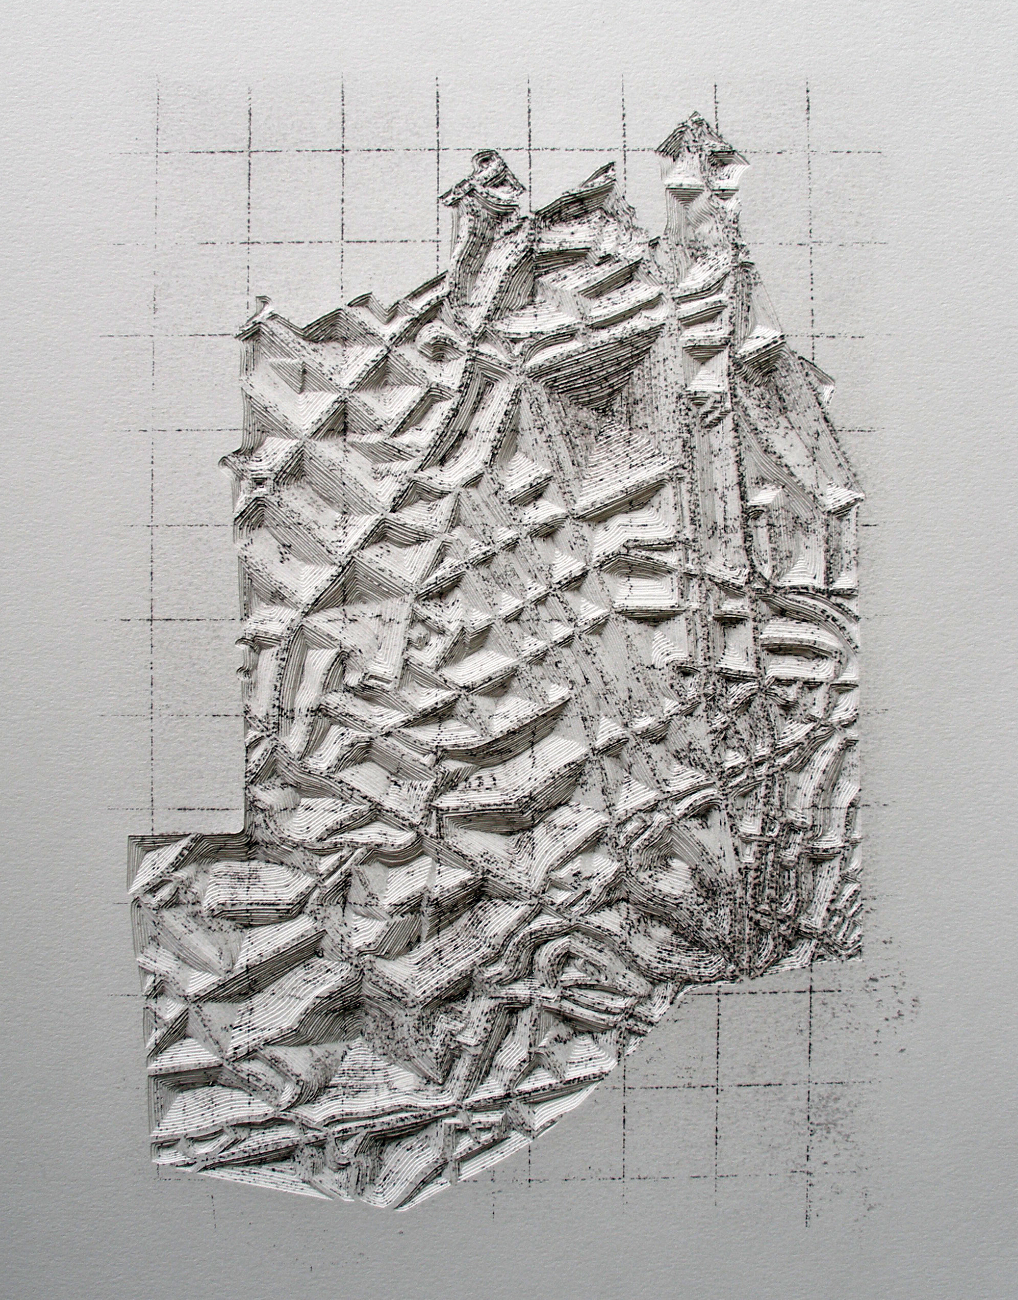 Invisible Cities #3, 2009